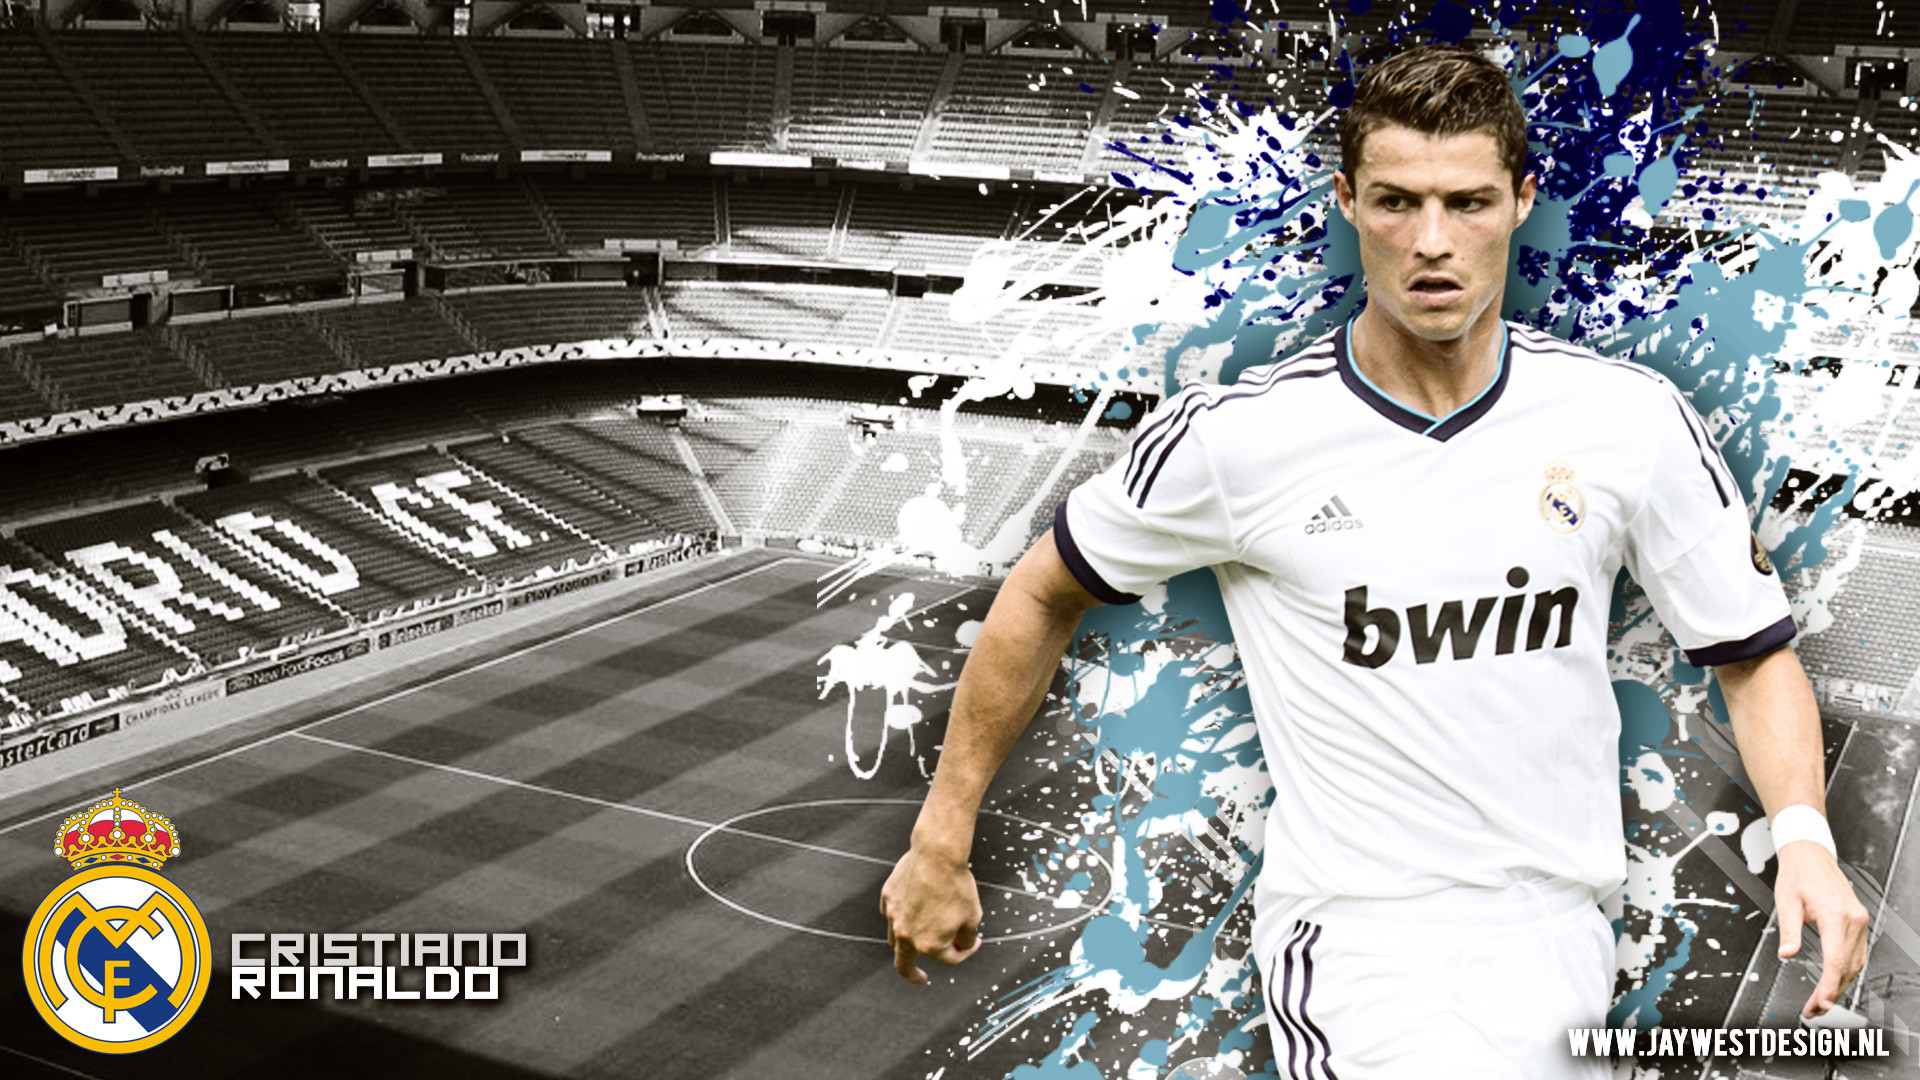 1920x1080 Football Real Madrid Wallpaper Hd 2013 - http://www.wallpapersoccer.com